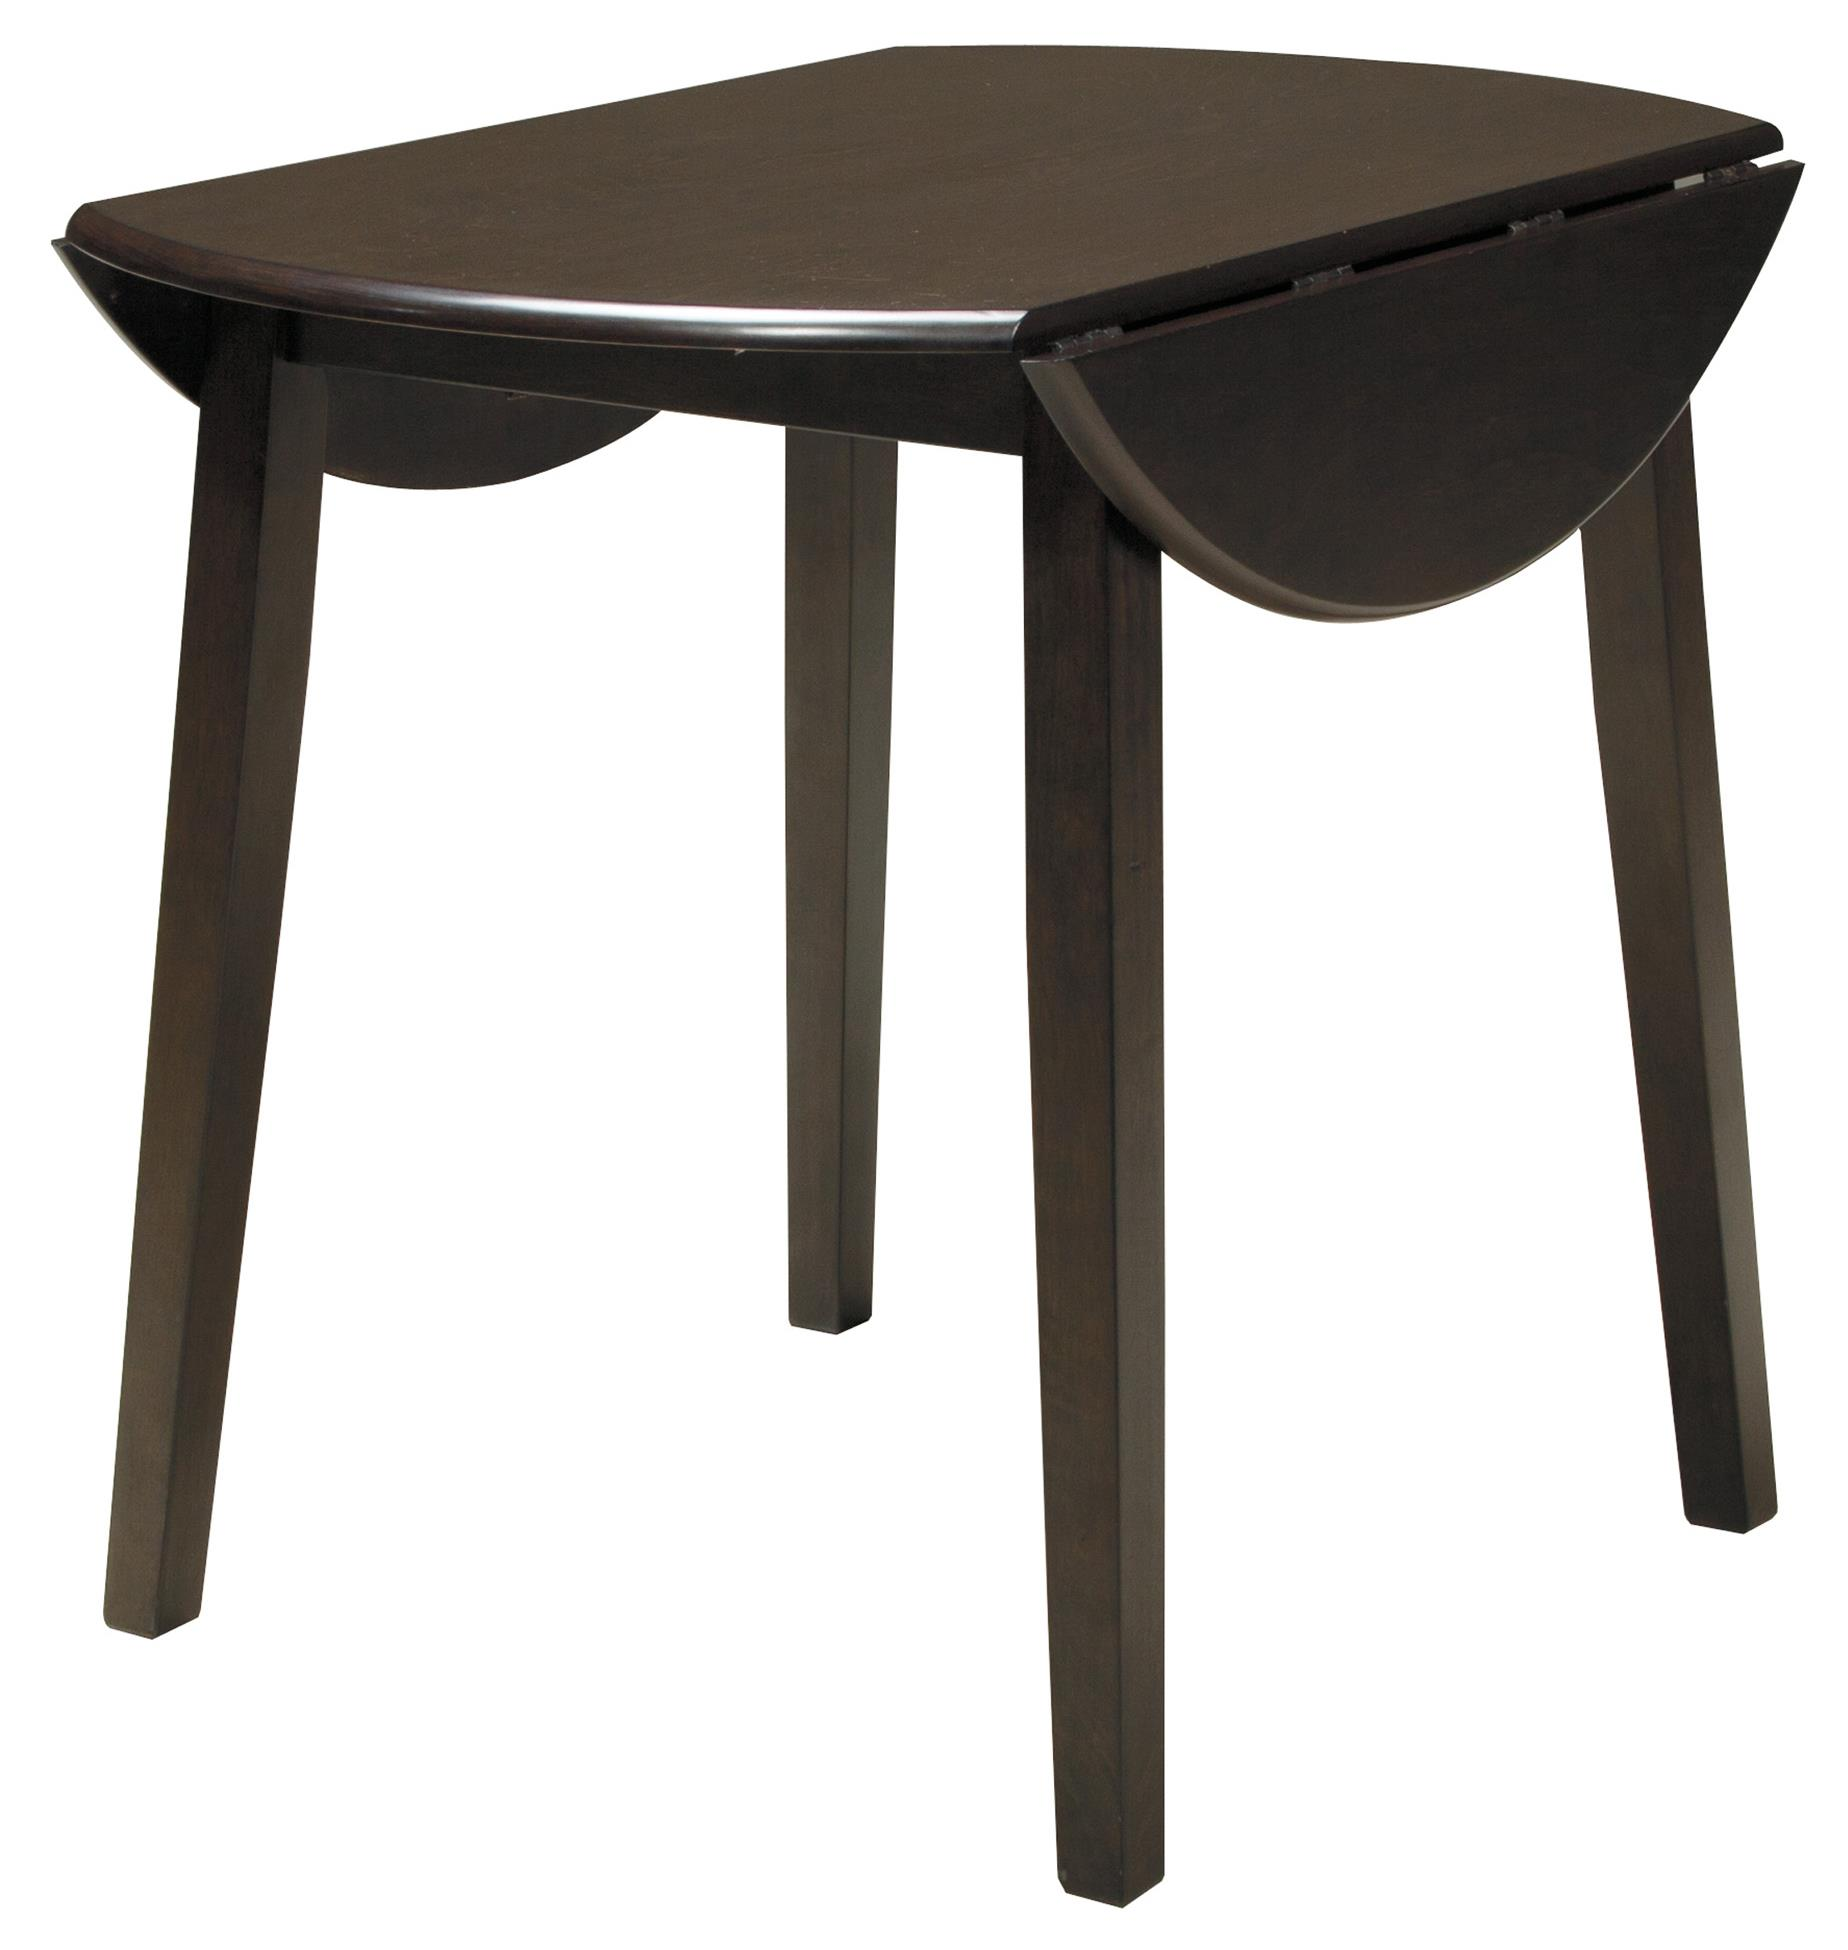 Signature Design by Ashley Hammis Round Dining Room Drop Leaf Table - Item Number: D310-15